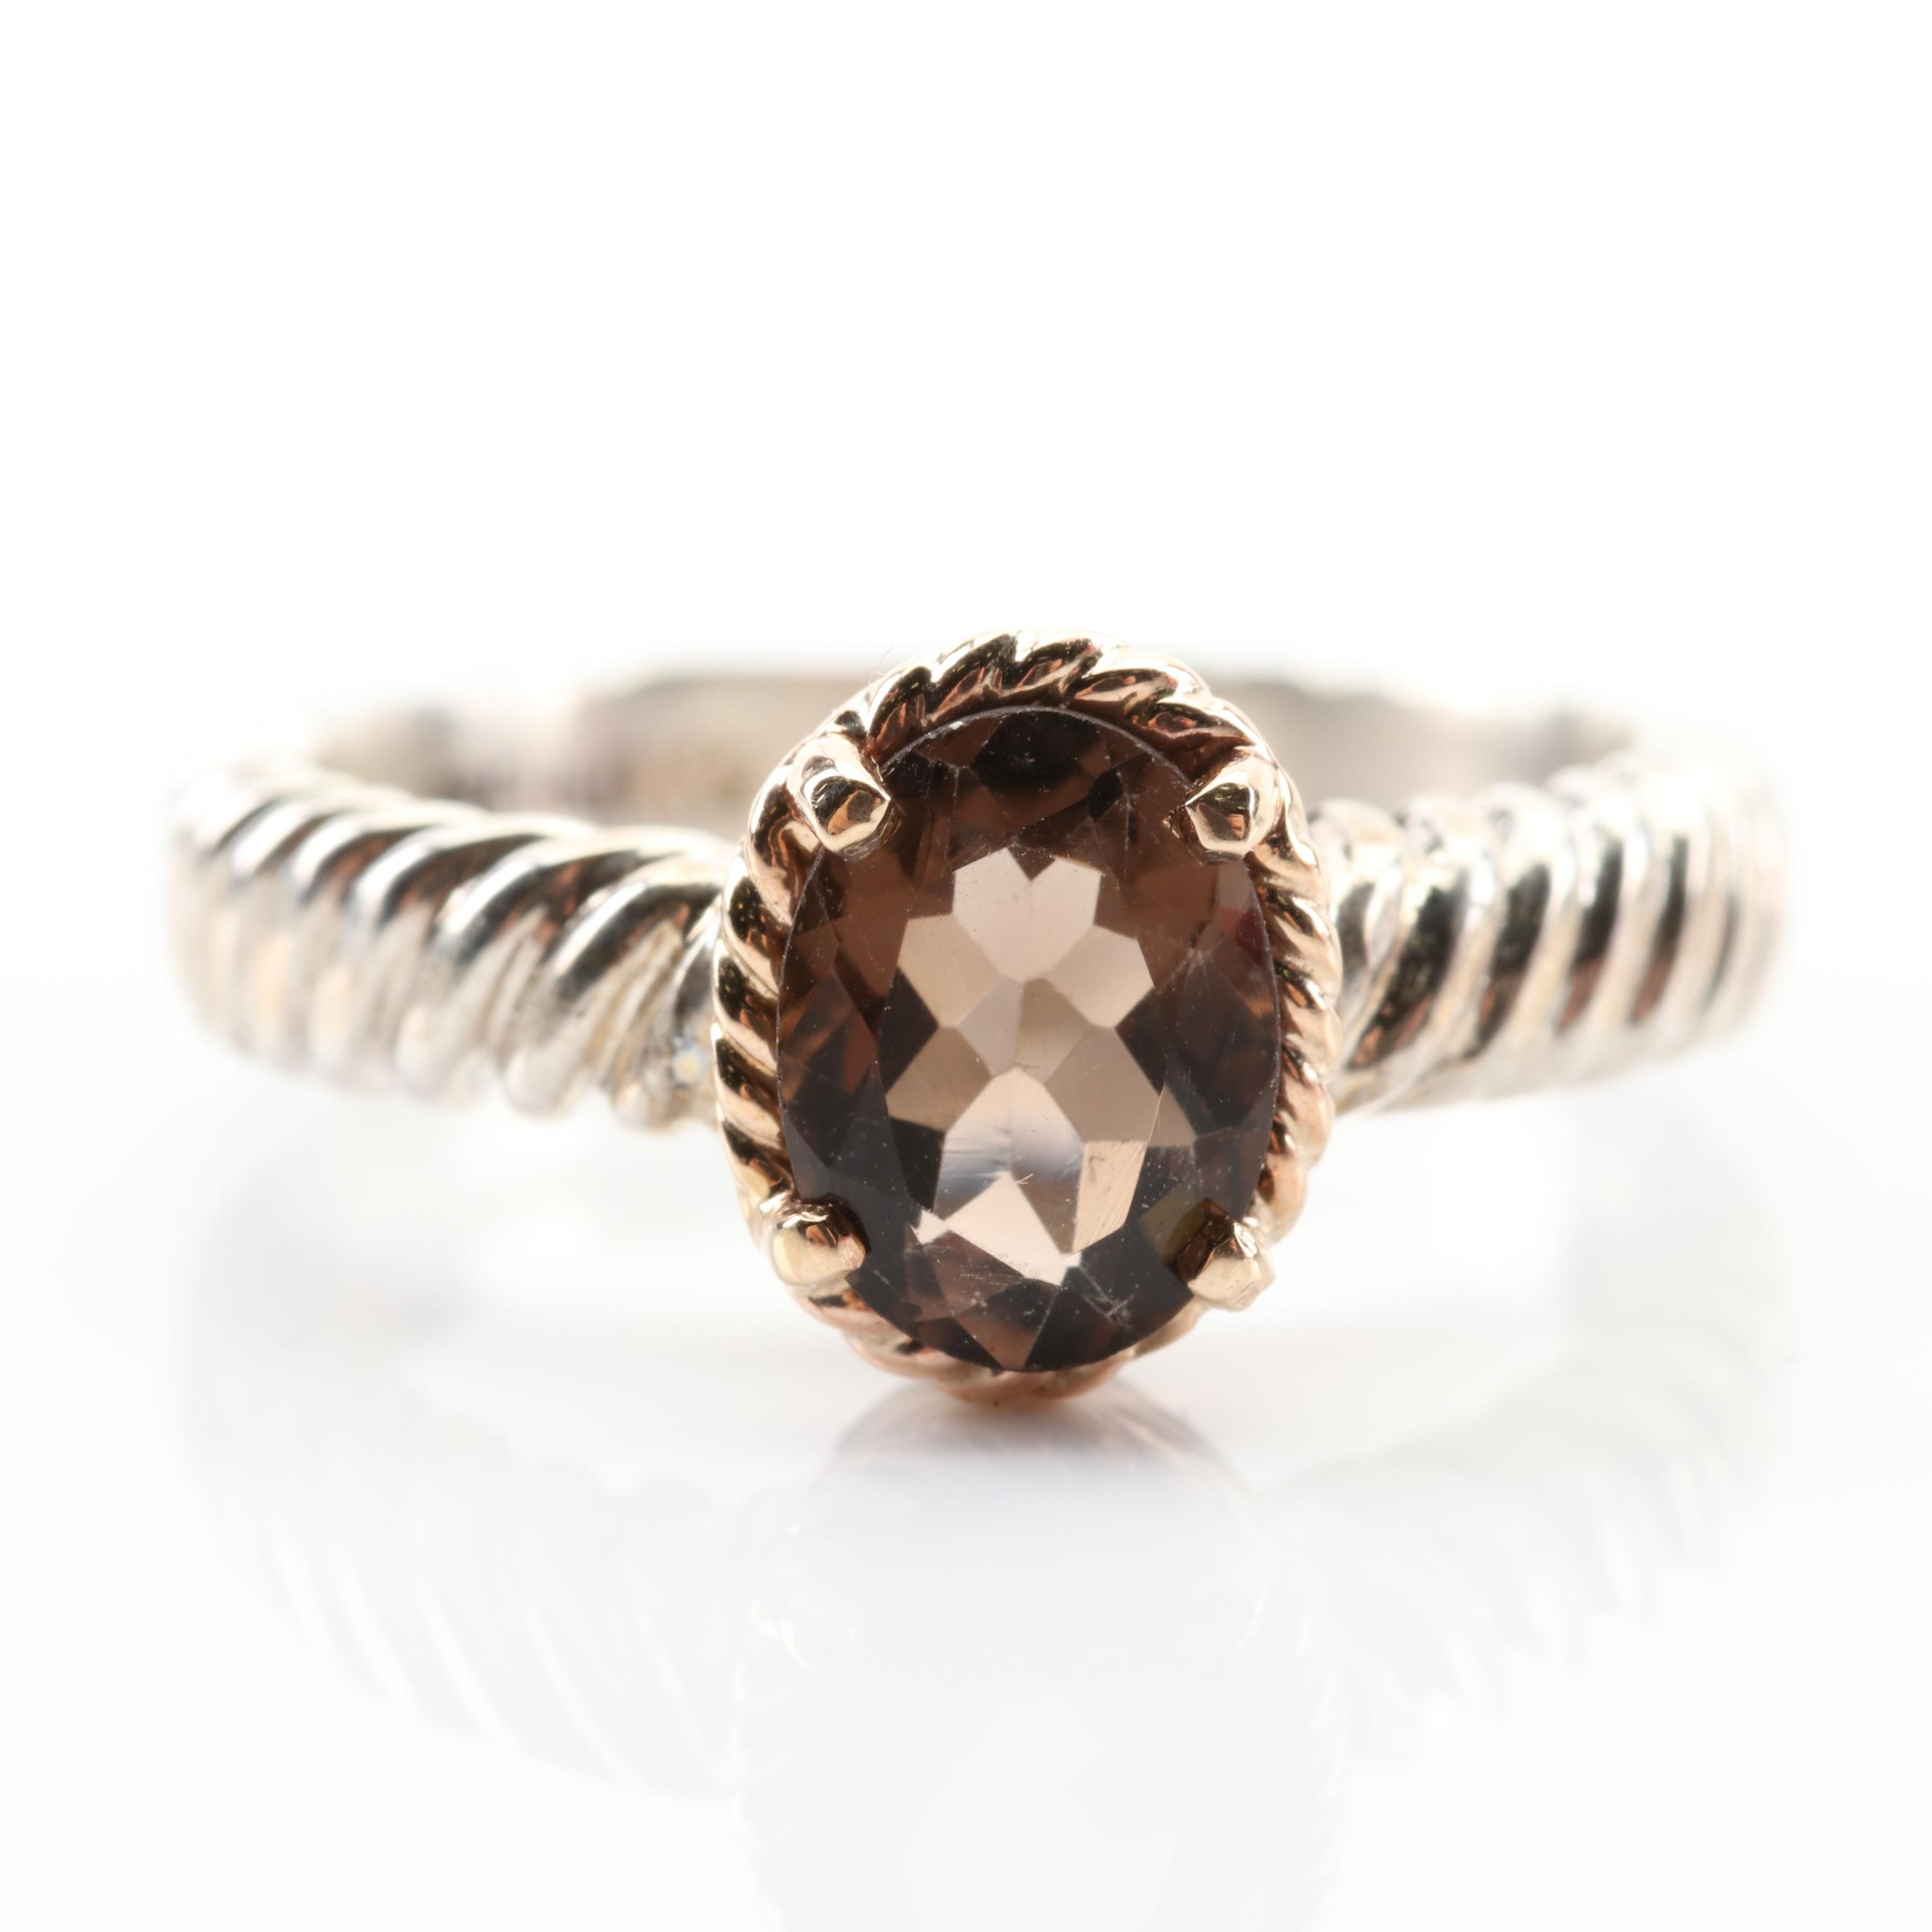 10K Yellow Gold and Sterling Silver 1.24 CT Smoky Quartz Ring